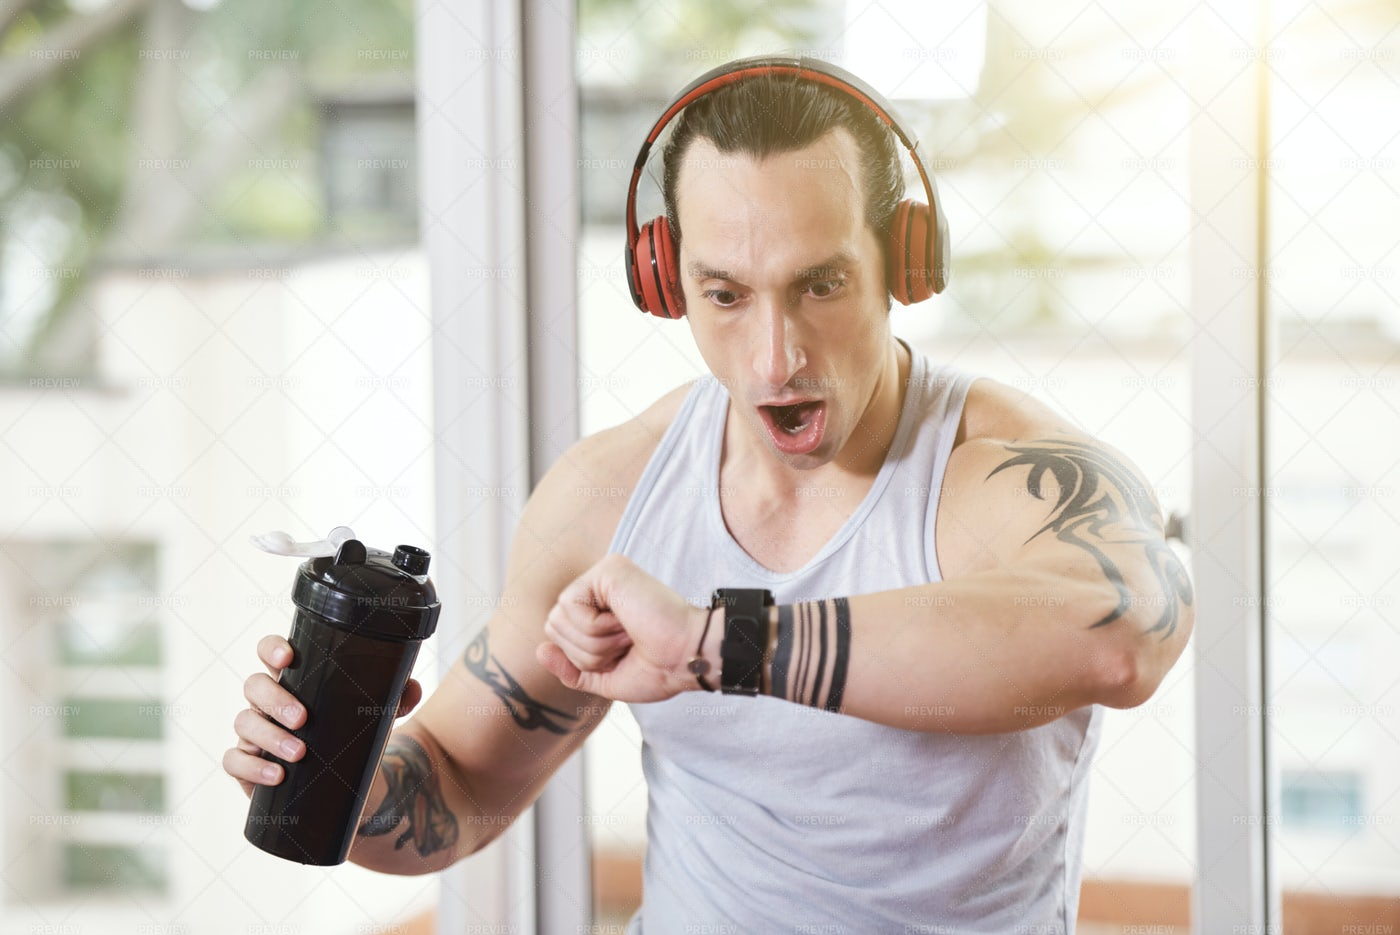 Shocked Sportsman Looking At Tracker: Stock Photos